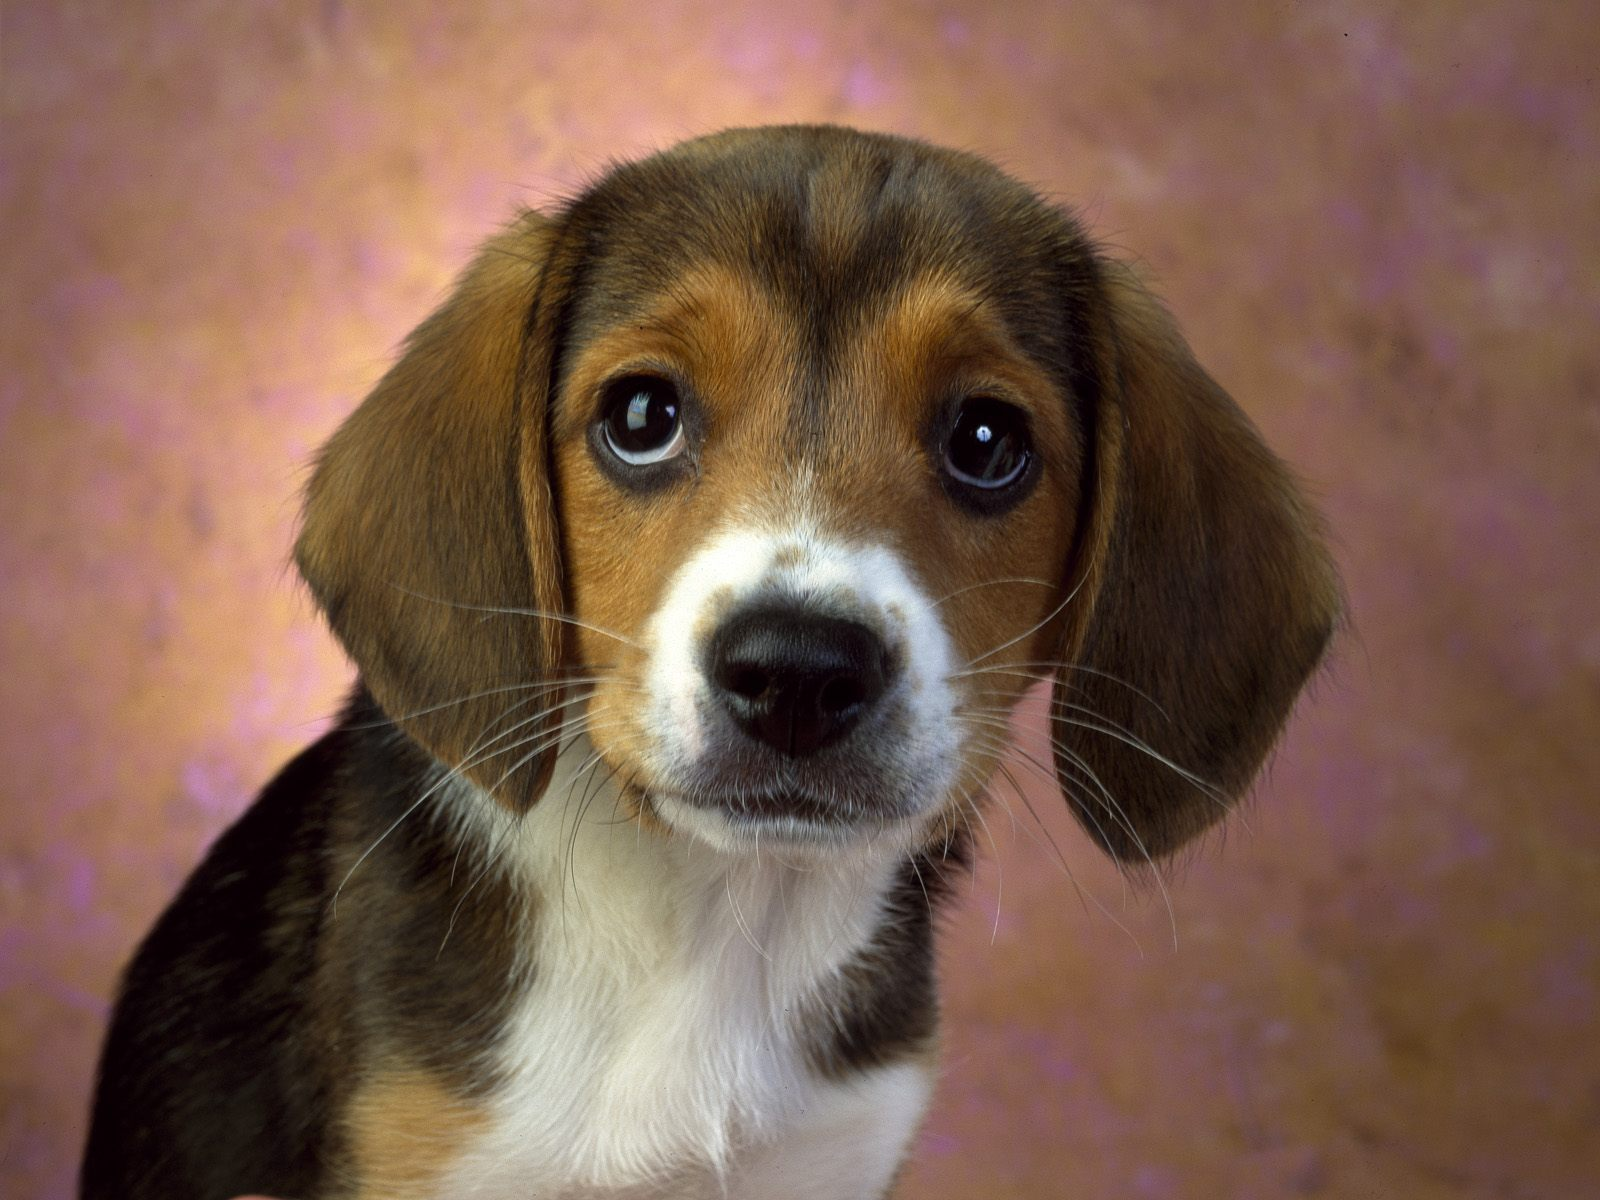 Simple Tiny Beagle Adorable Dog - Beagle-puppy-dog-hound-dogs-15363092-1600-1200  Image_23196  .jpg